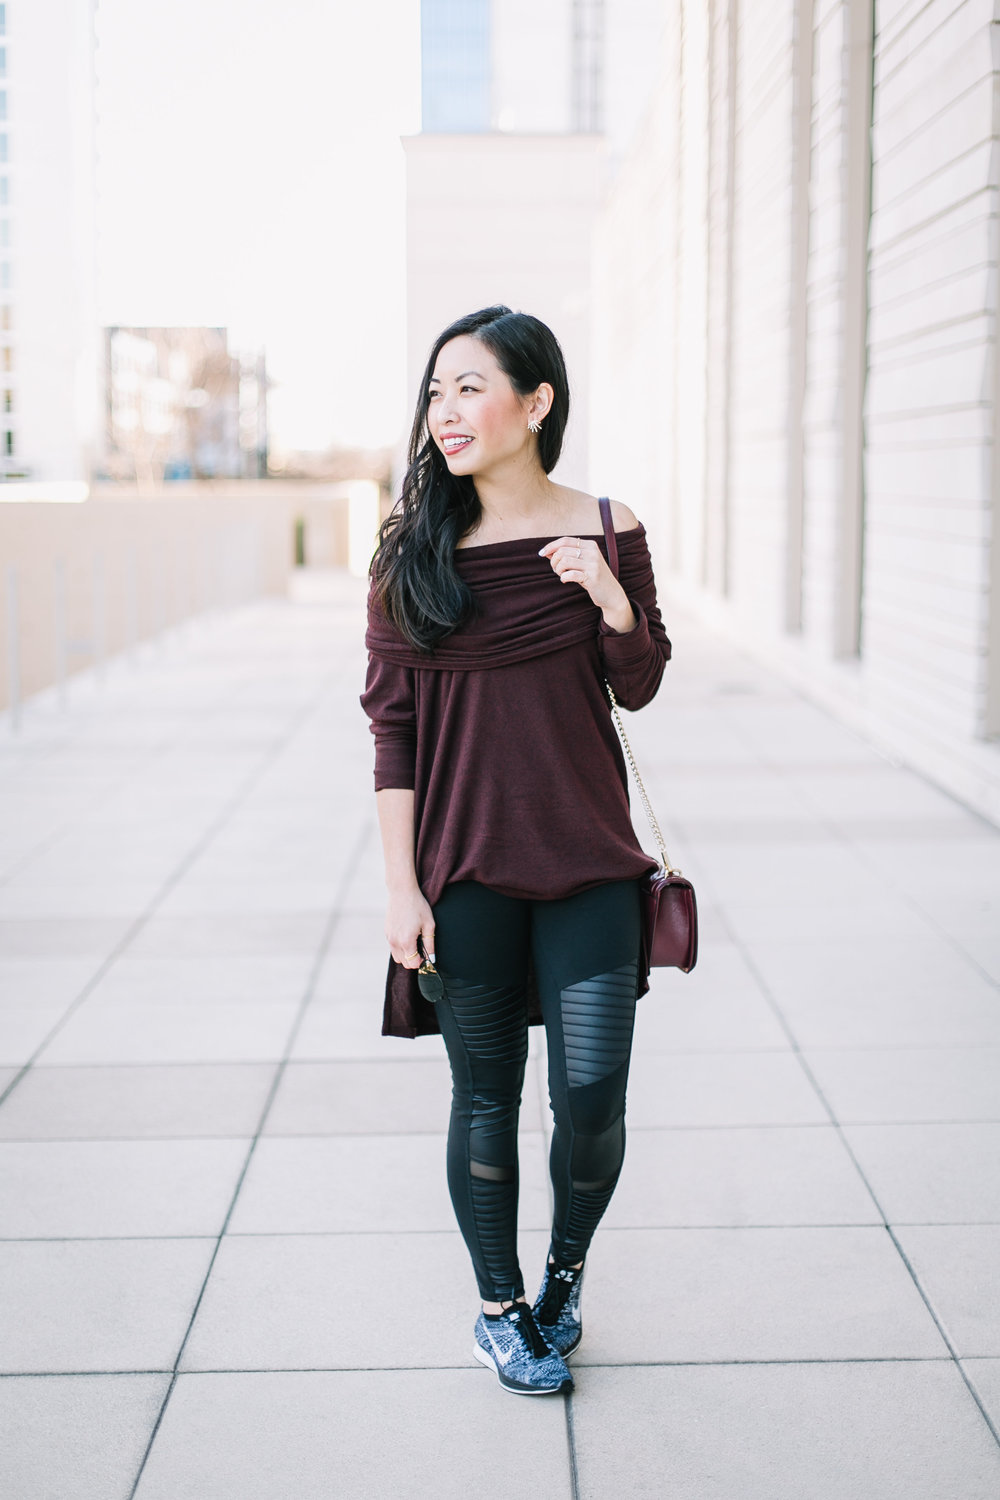 athleisure in a convertible tunic -- jannadoan.com